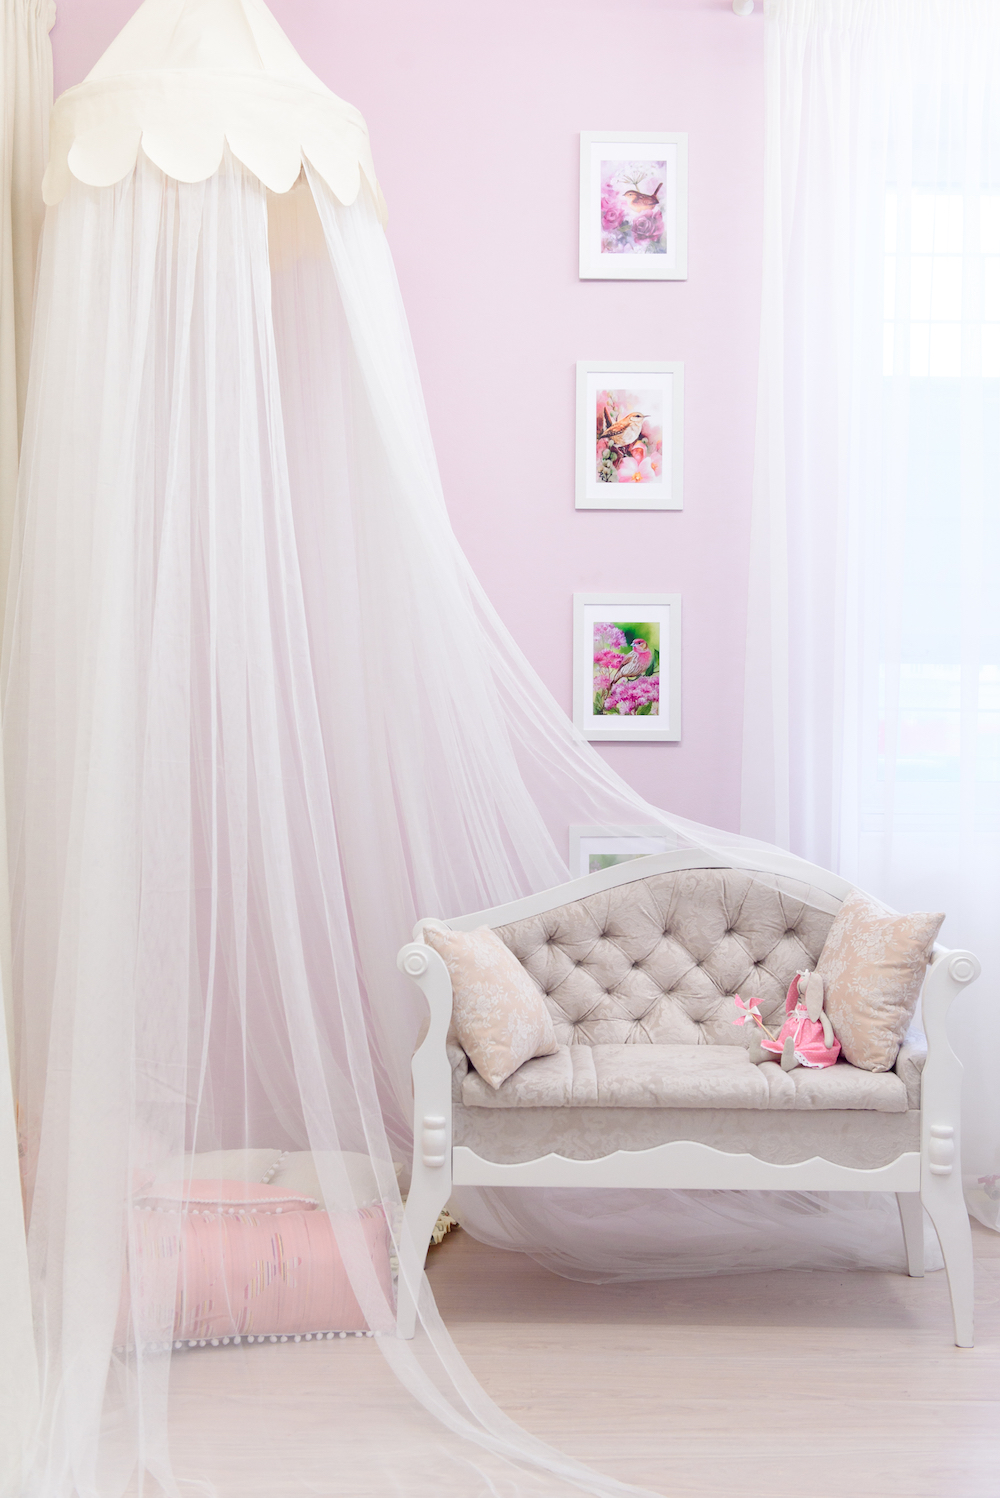 A princess canopy bed is every little girl's dream